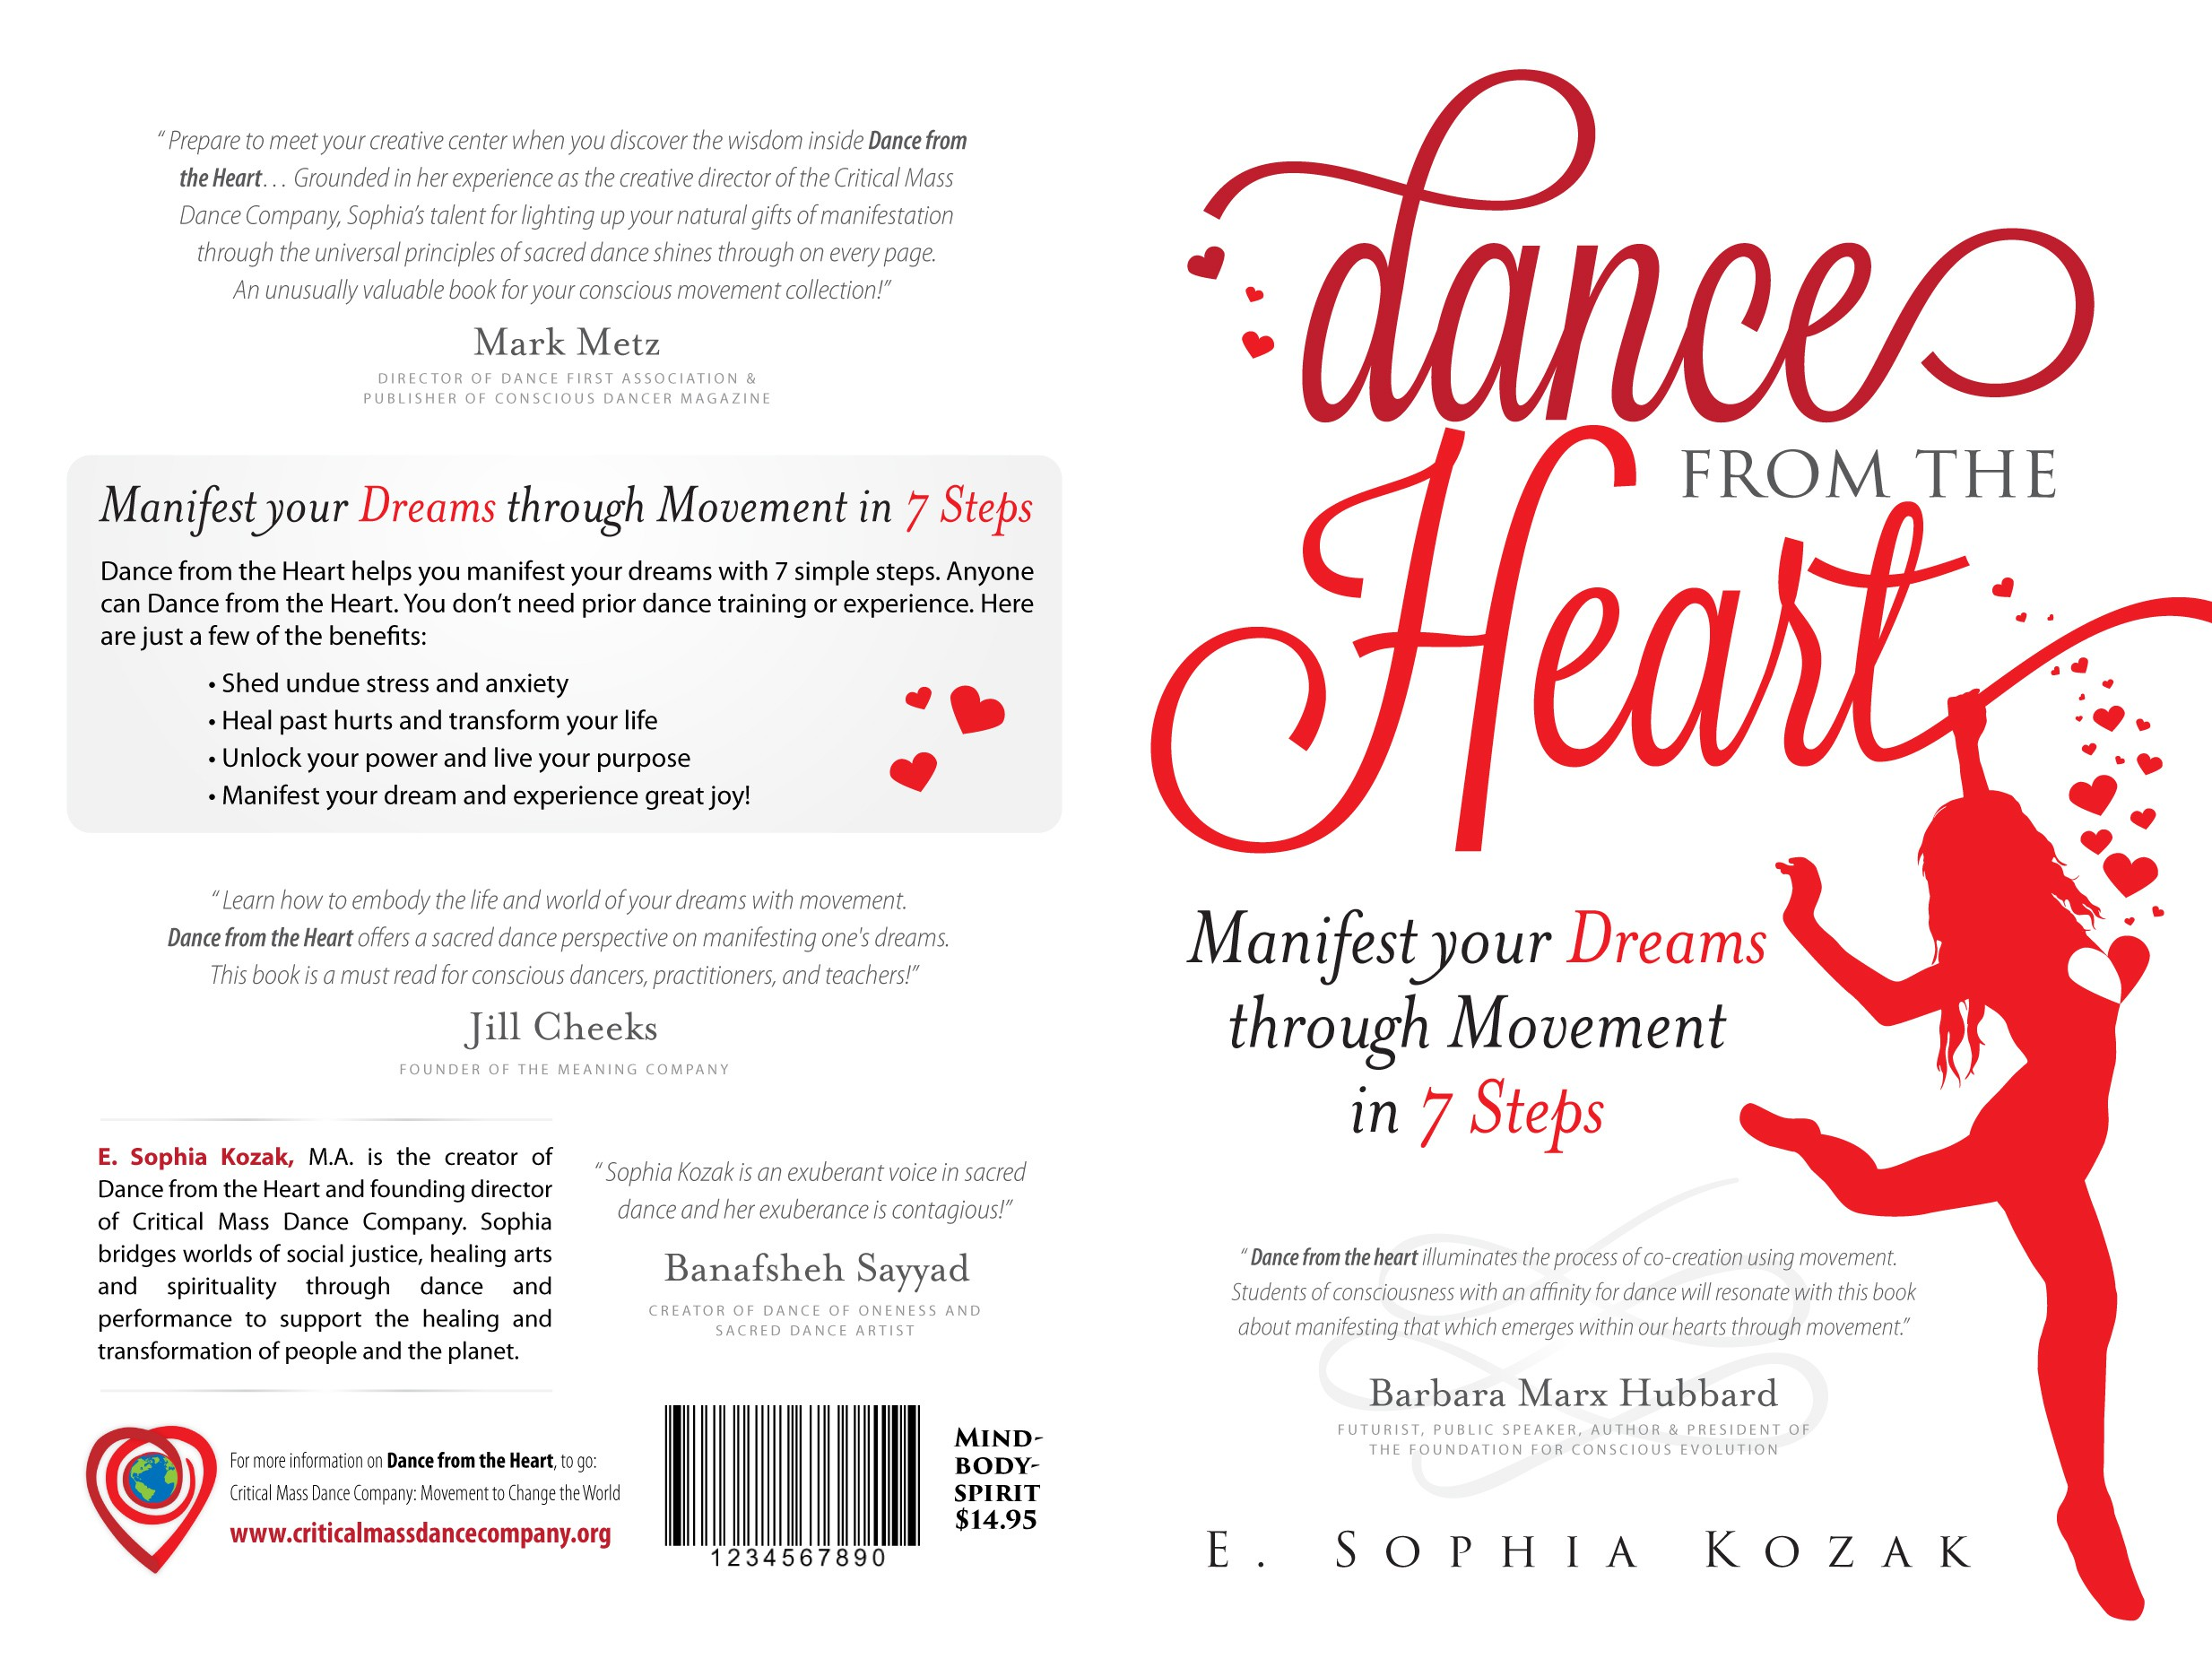 Design a inspired cover for book about a healing dance practice!